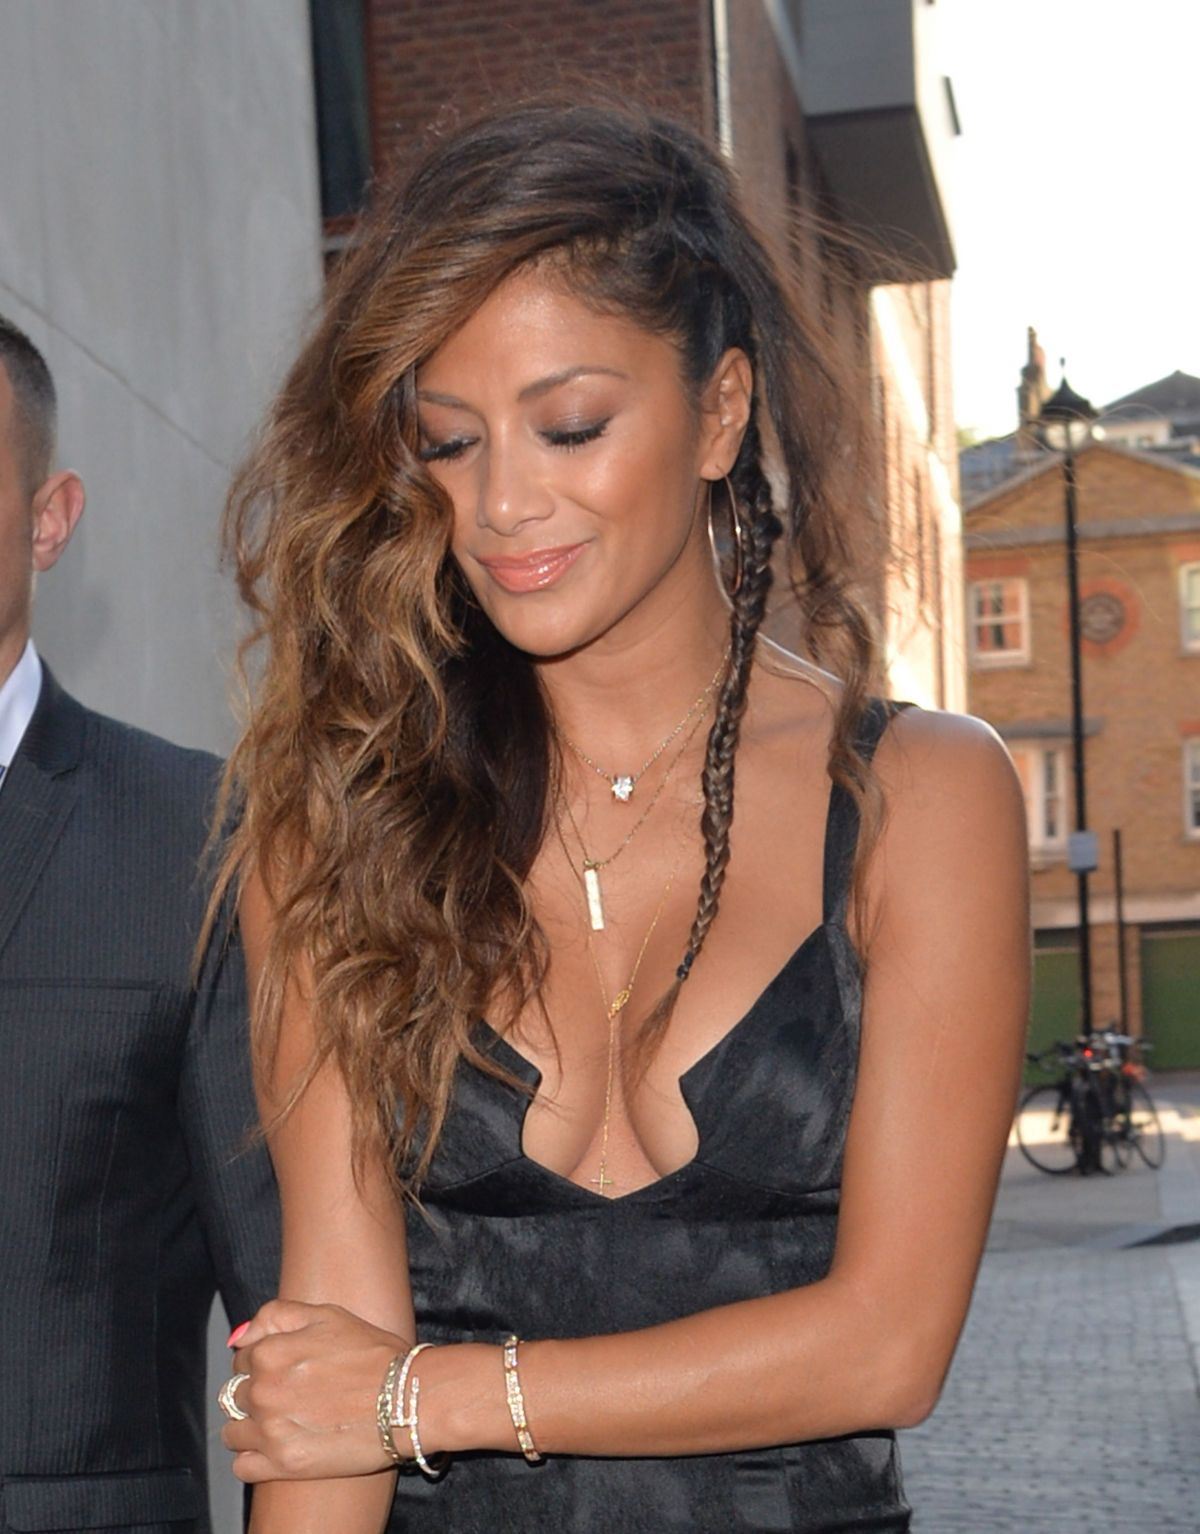 Nicole Scherzinger At Zuma Restaurant In London Celebzz